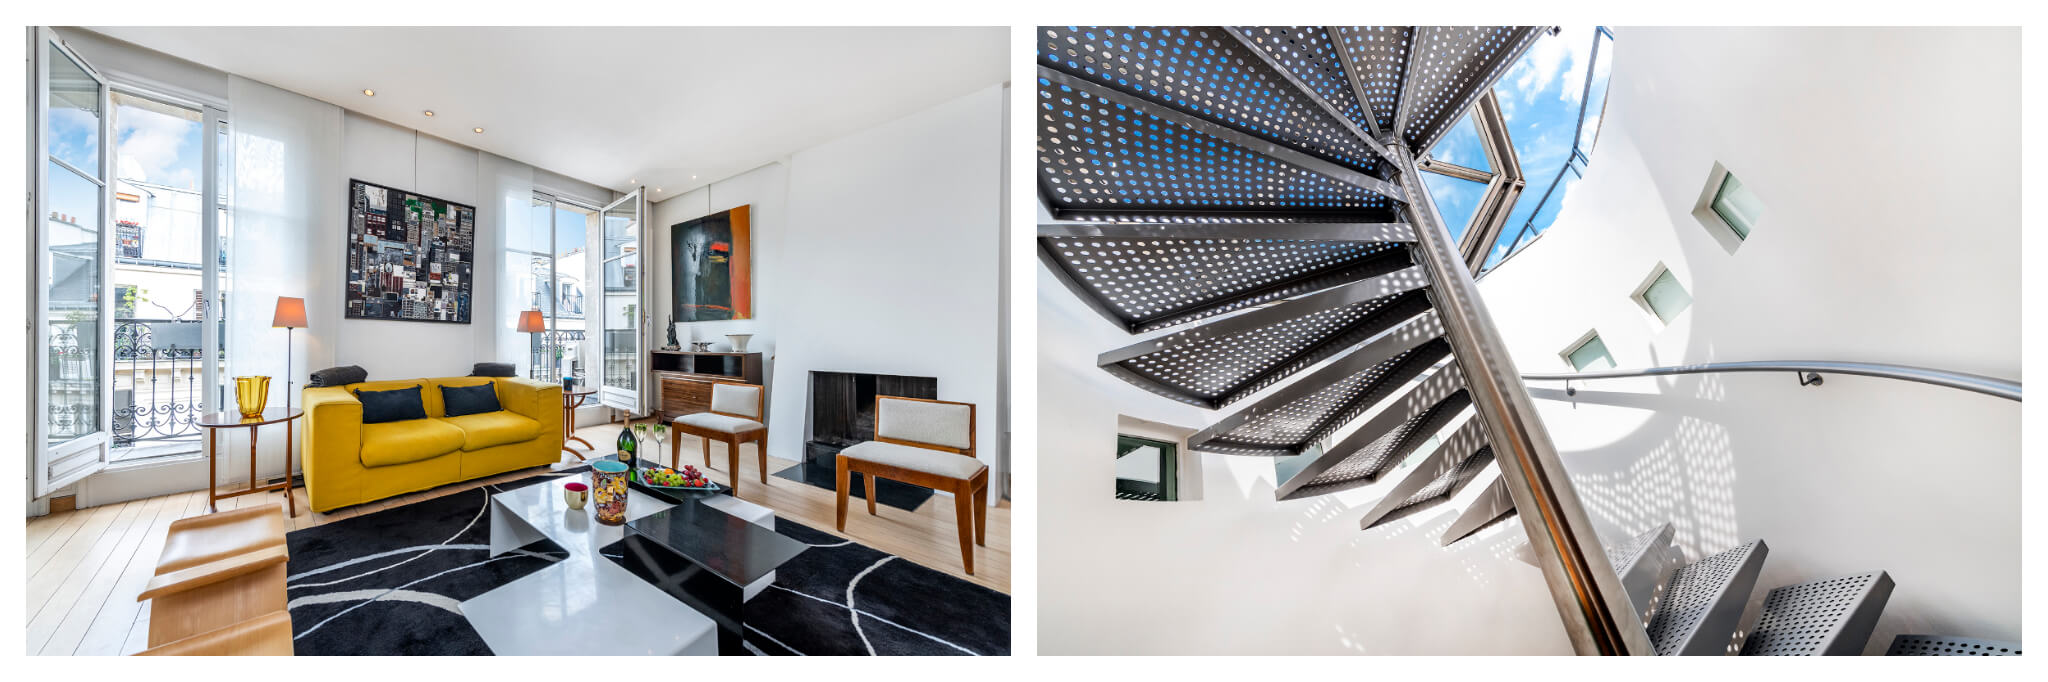 Left: The beautiful living room of the Haven In Marais Penthouse apartment, with large windows and a selection of tasteful furniture, Right: The stairway leading to the skylight which accesses rooftop deck of the Marais Penthouse apartment